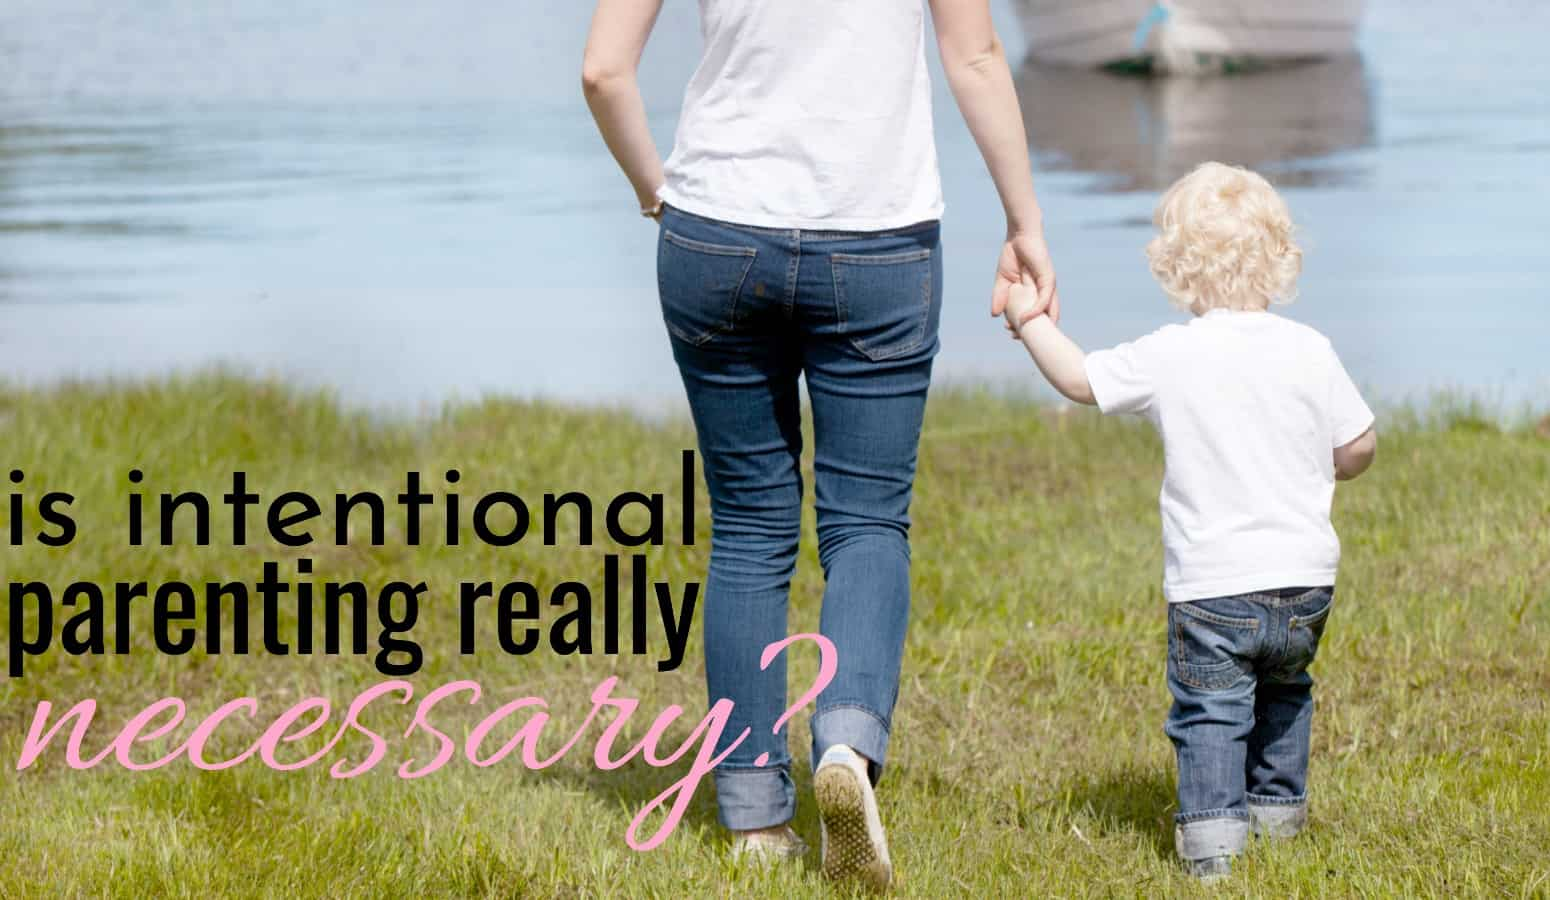 mom intentionally parenting her son as they walk hand in hand by a lake